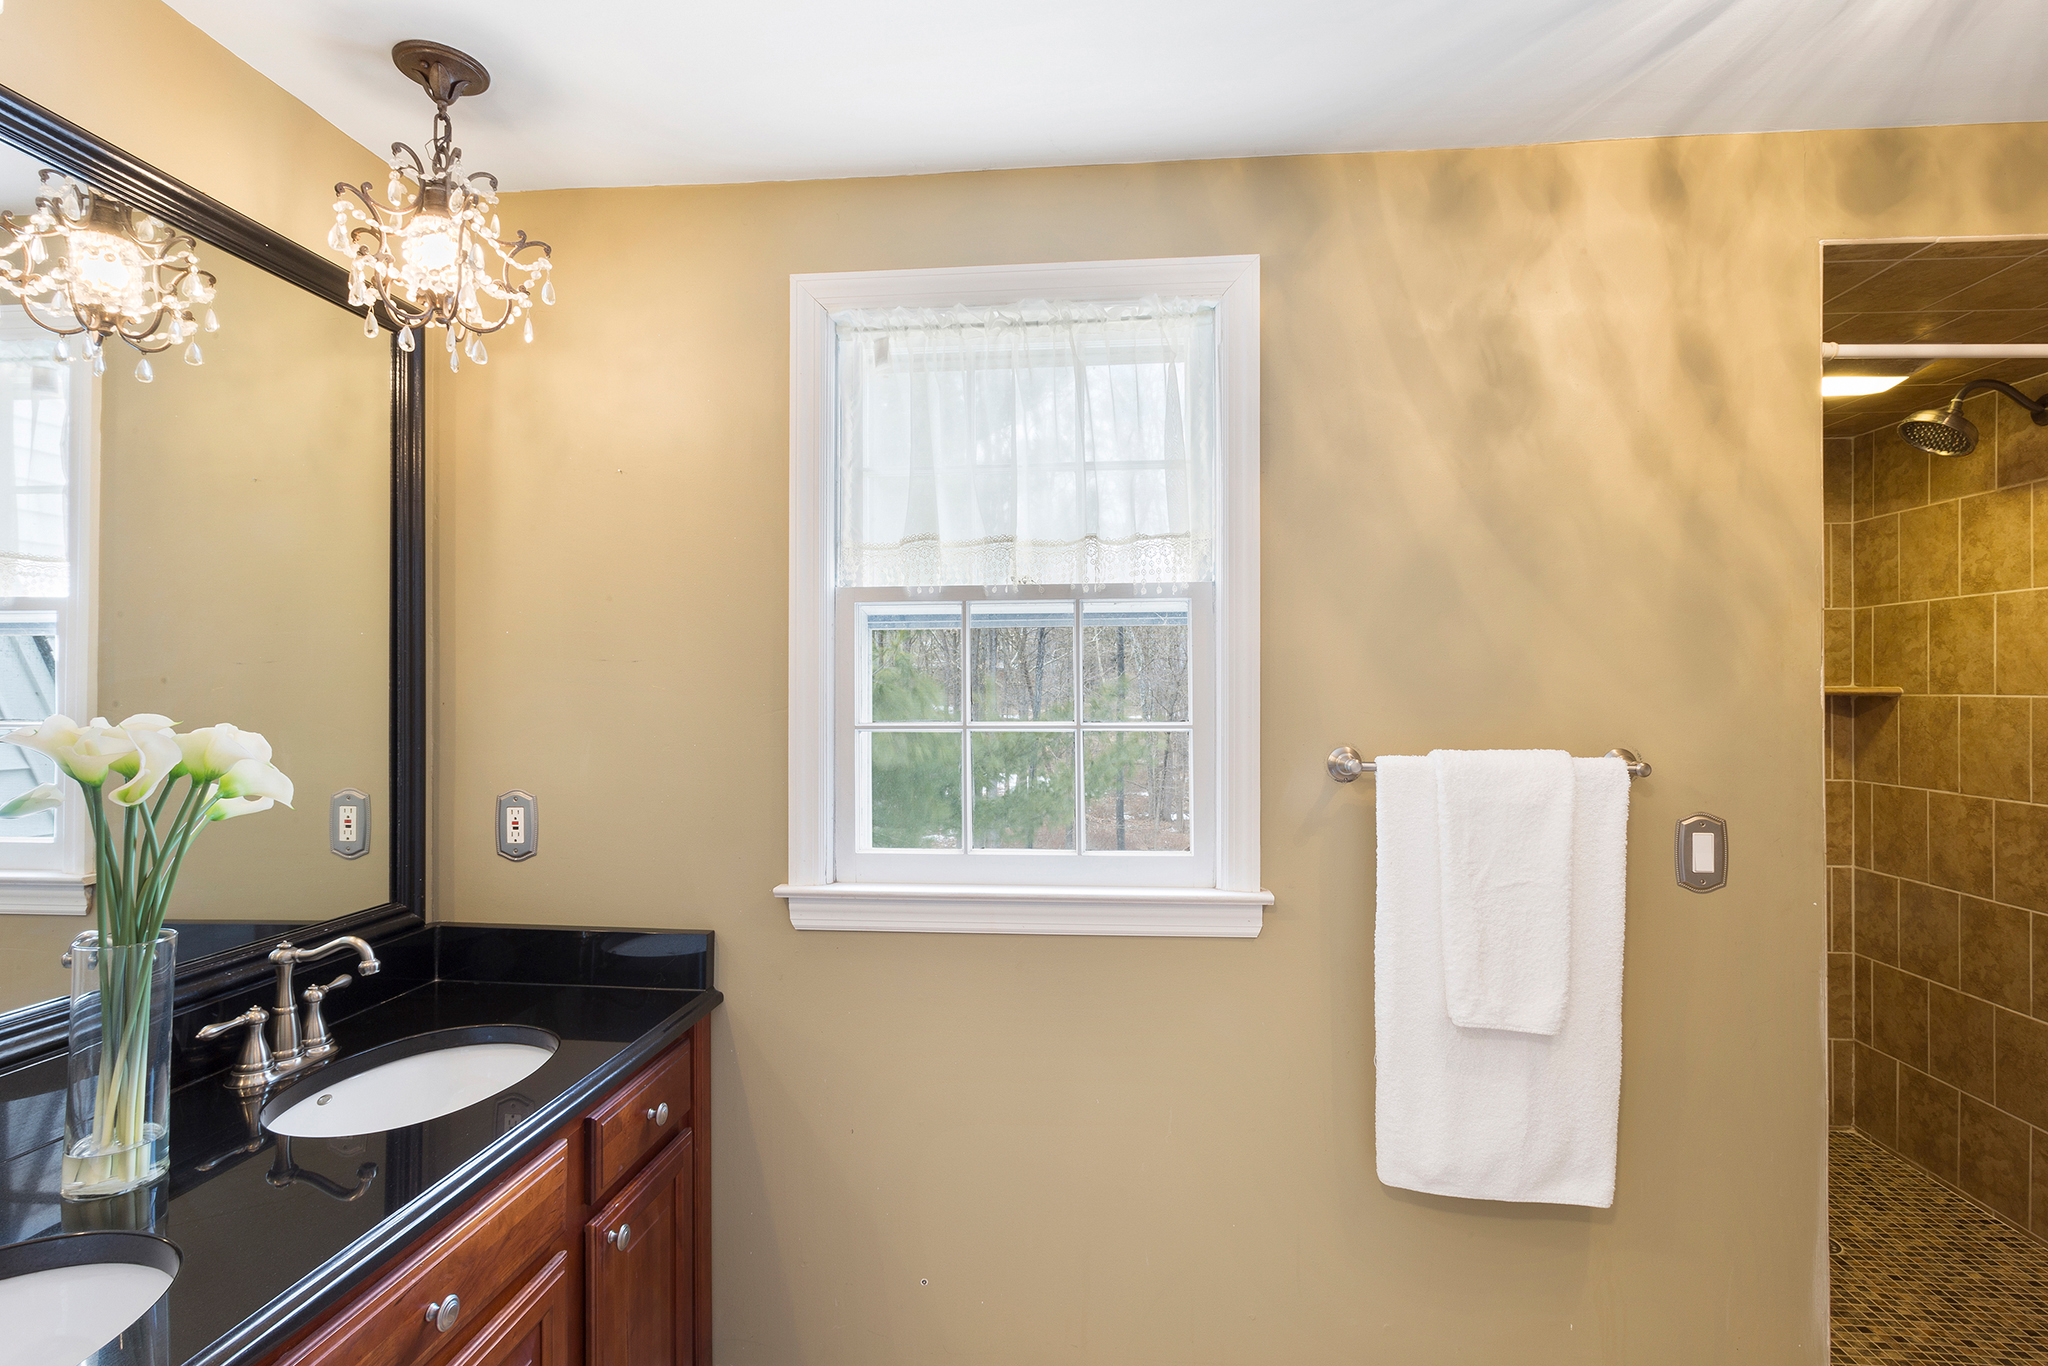 13 14 Keats Road Tewksbury Township — MBR Bath